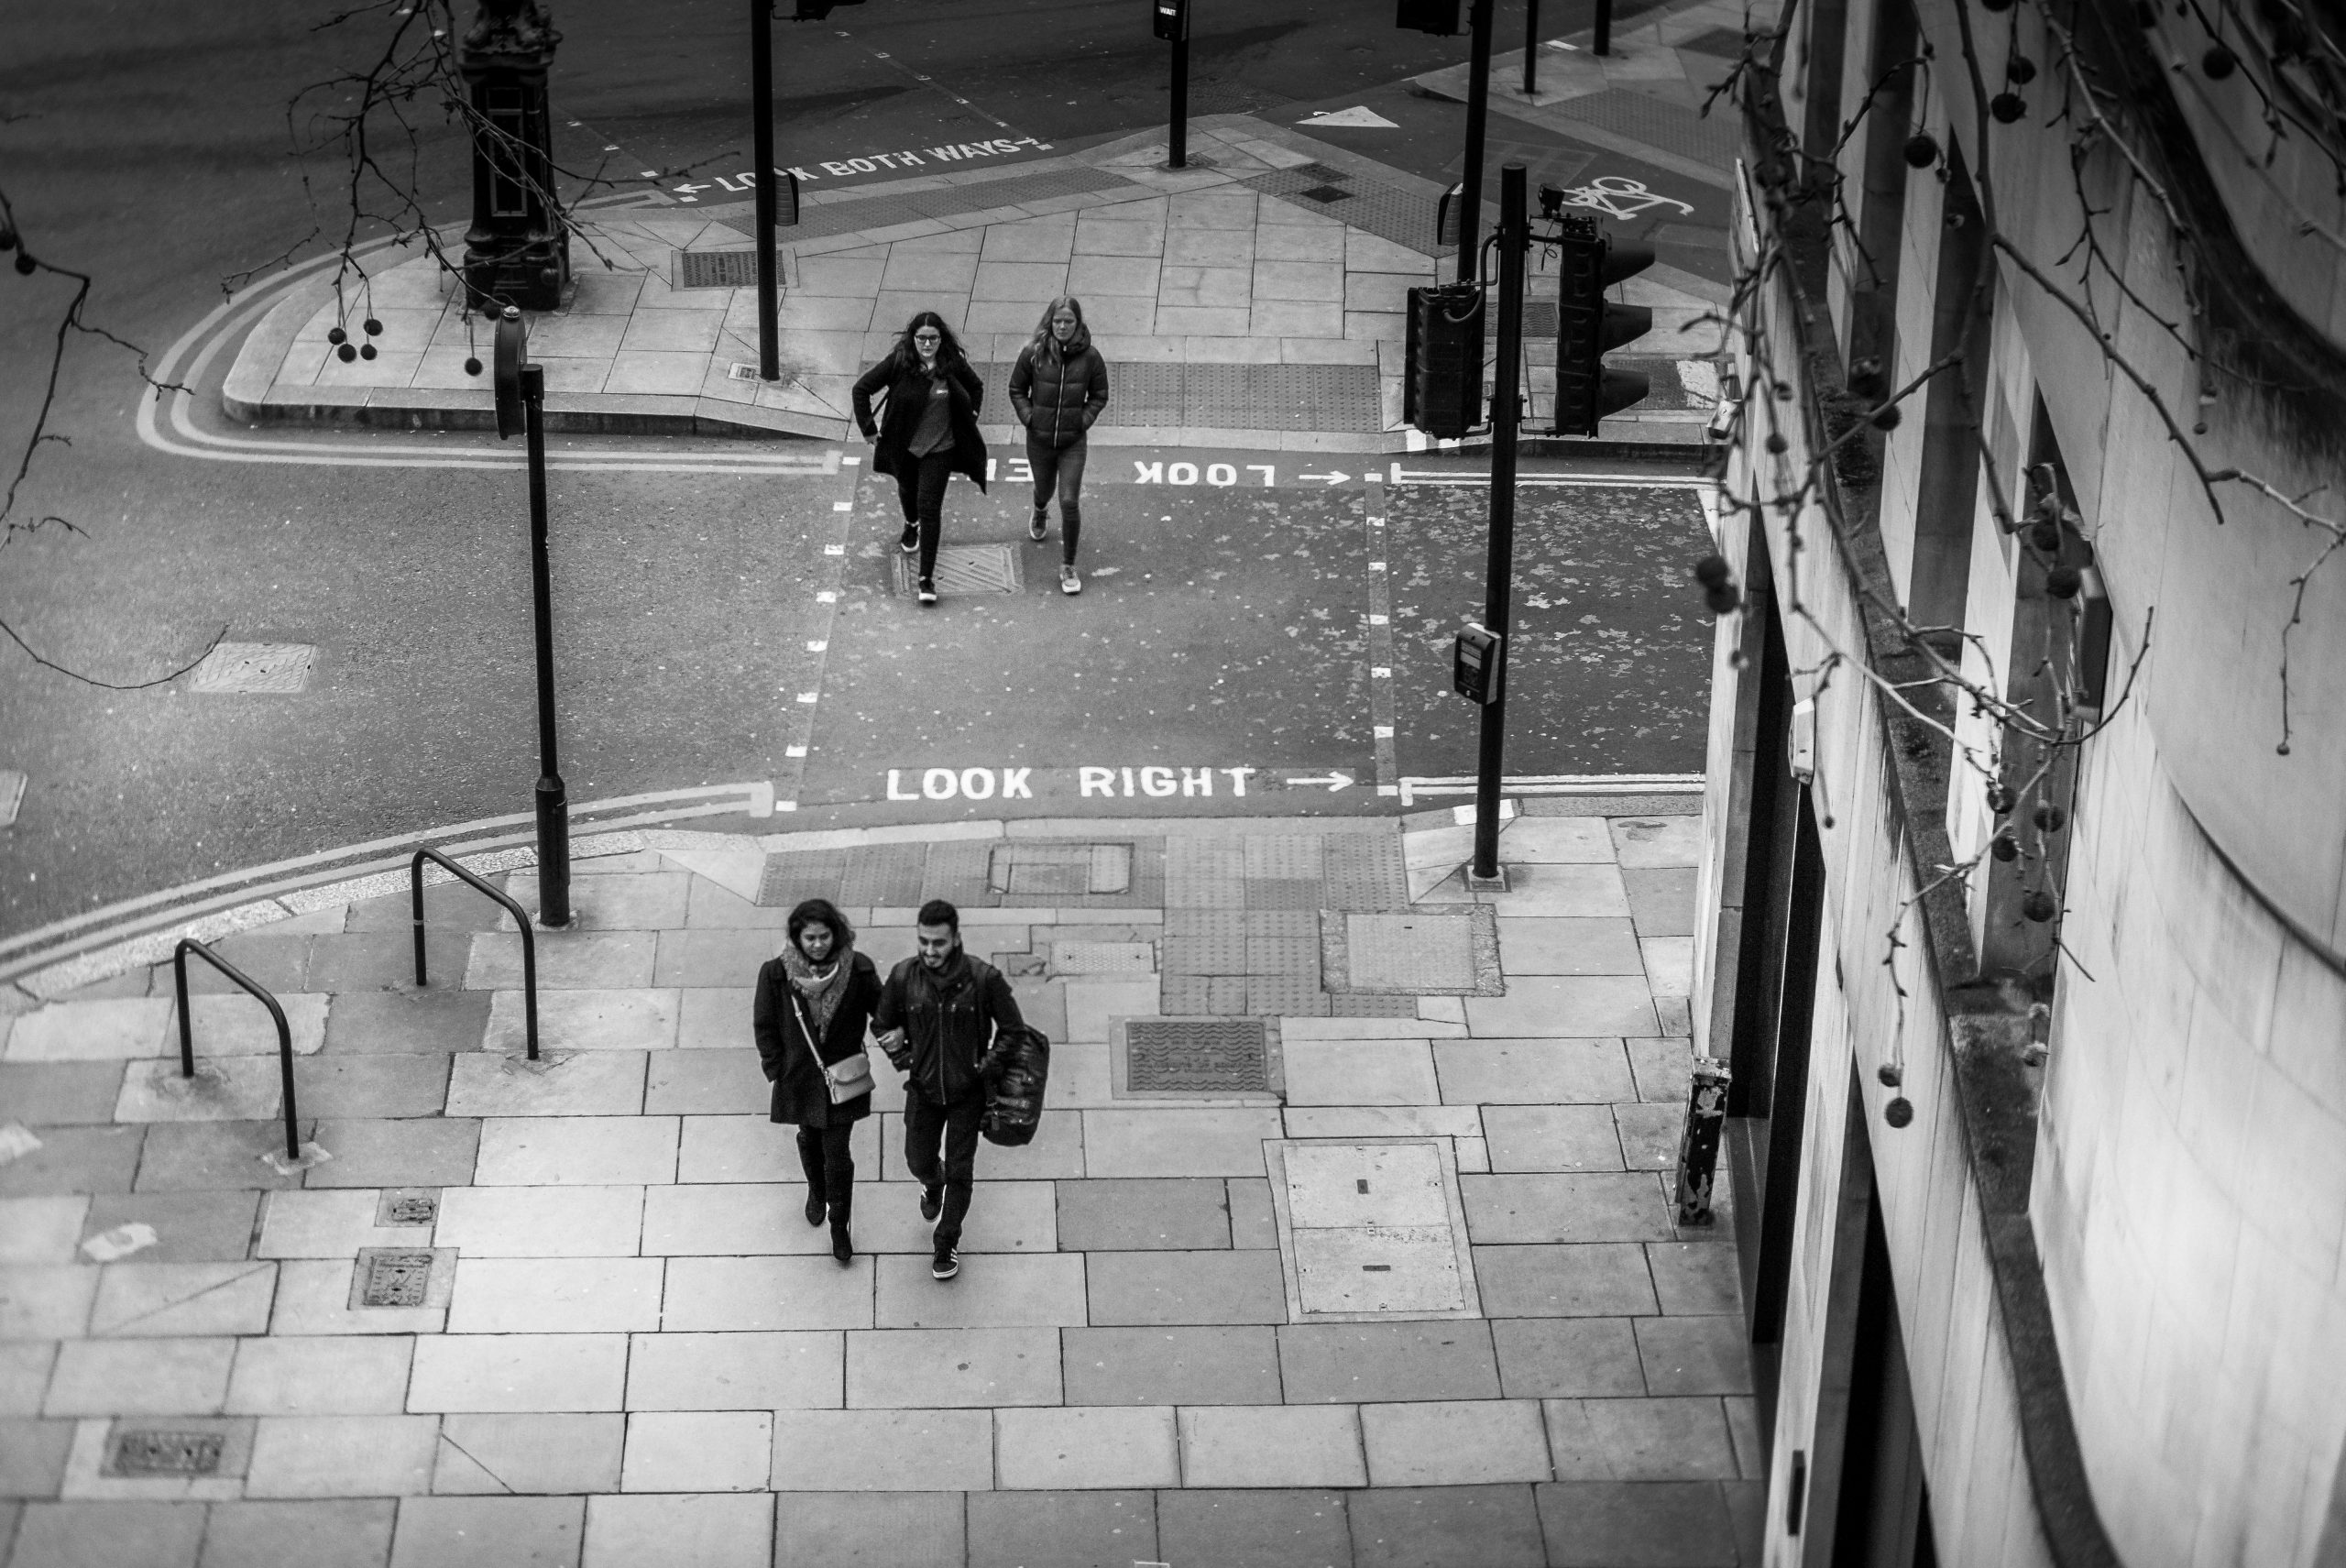 Street Photography in the style of Cartier Bresson